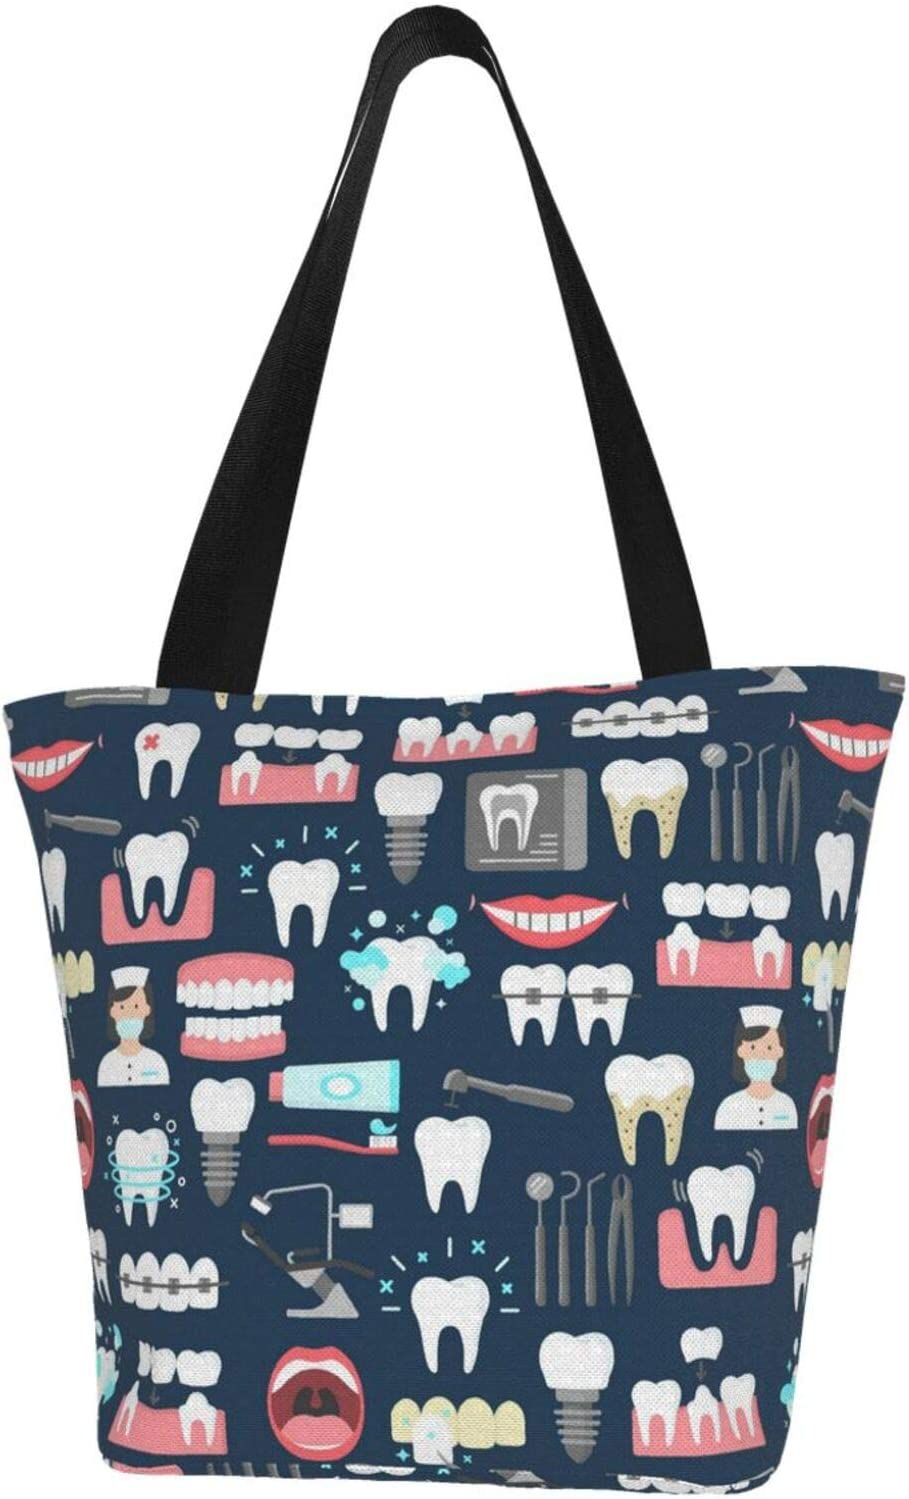 antcreptson Dental New sales Seamless Pattern 1 Wome Tote Bags for Beach outlet